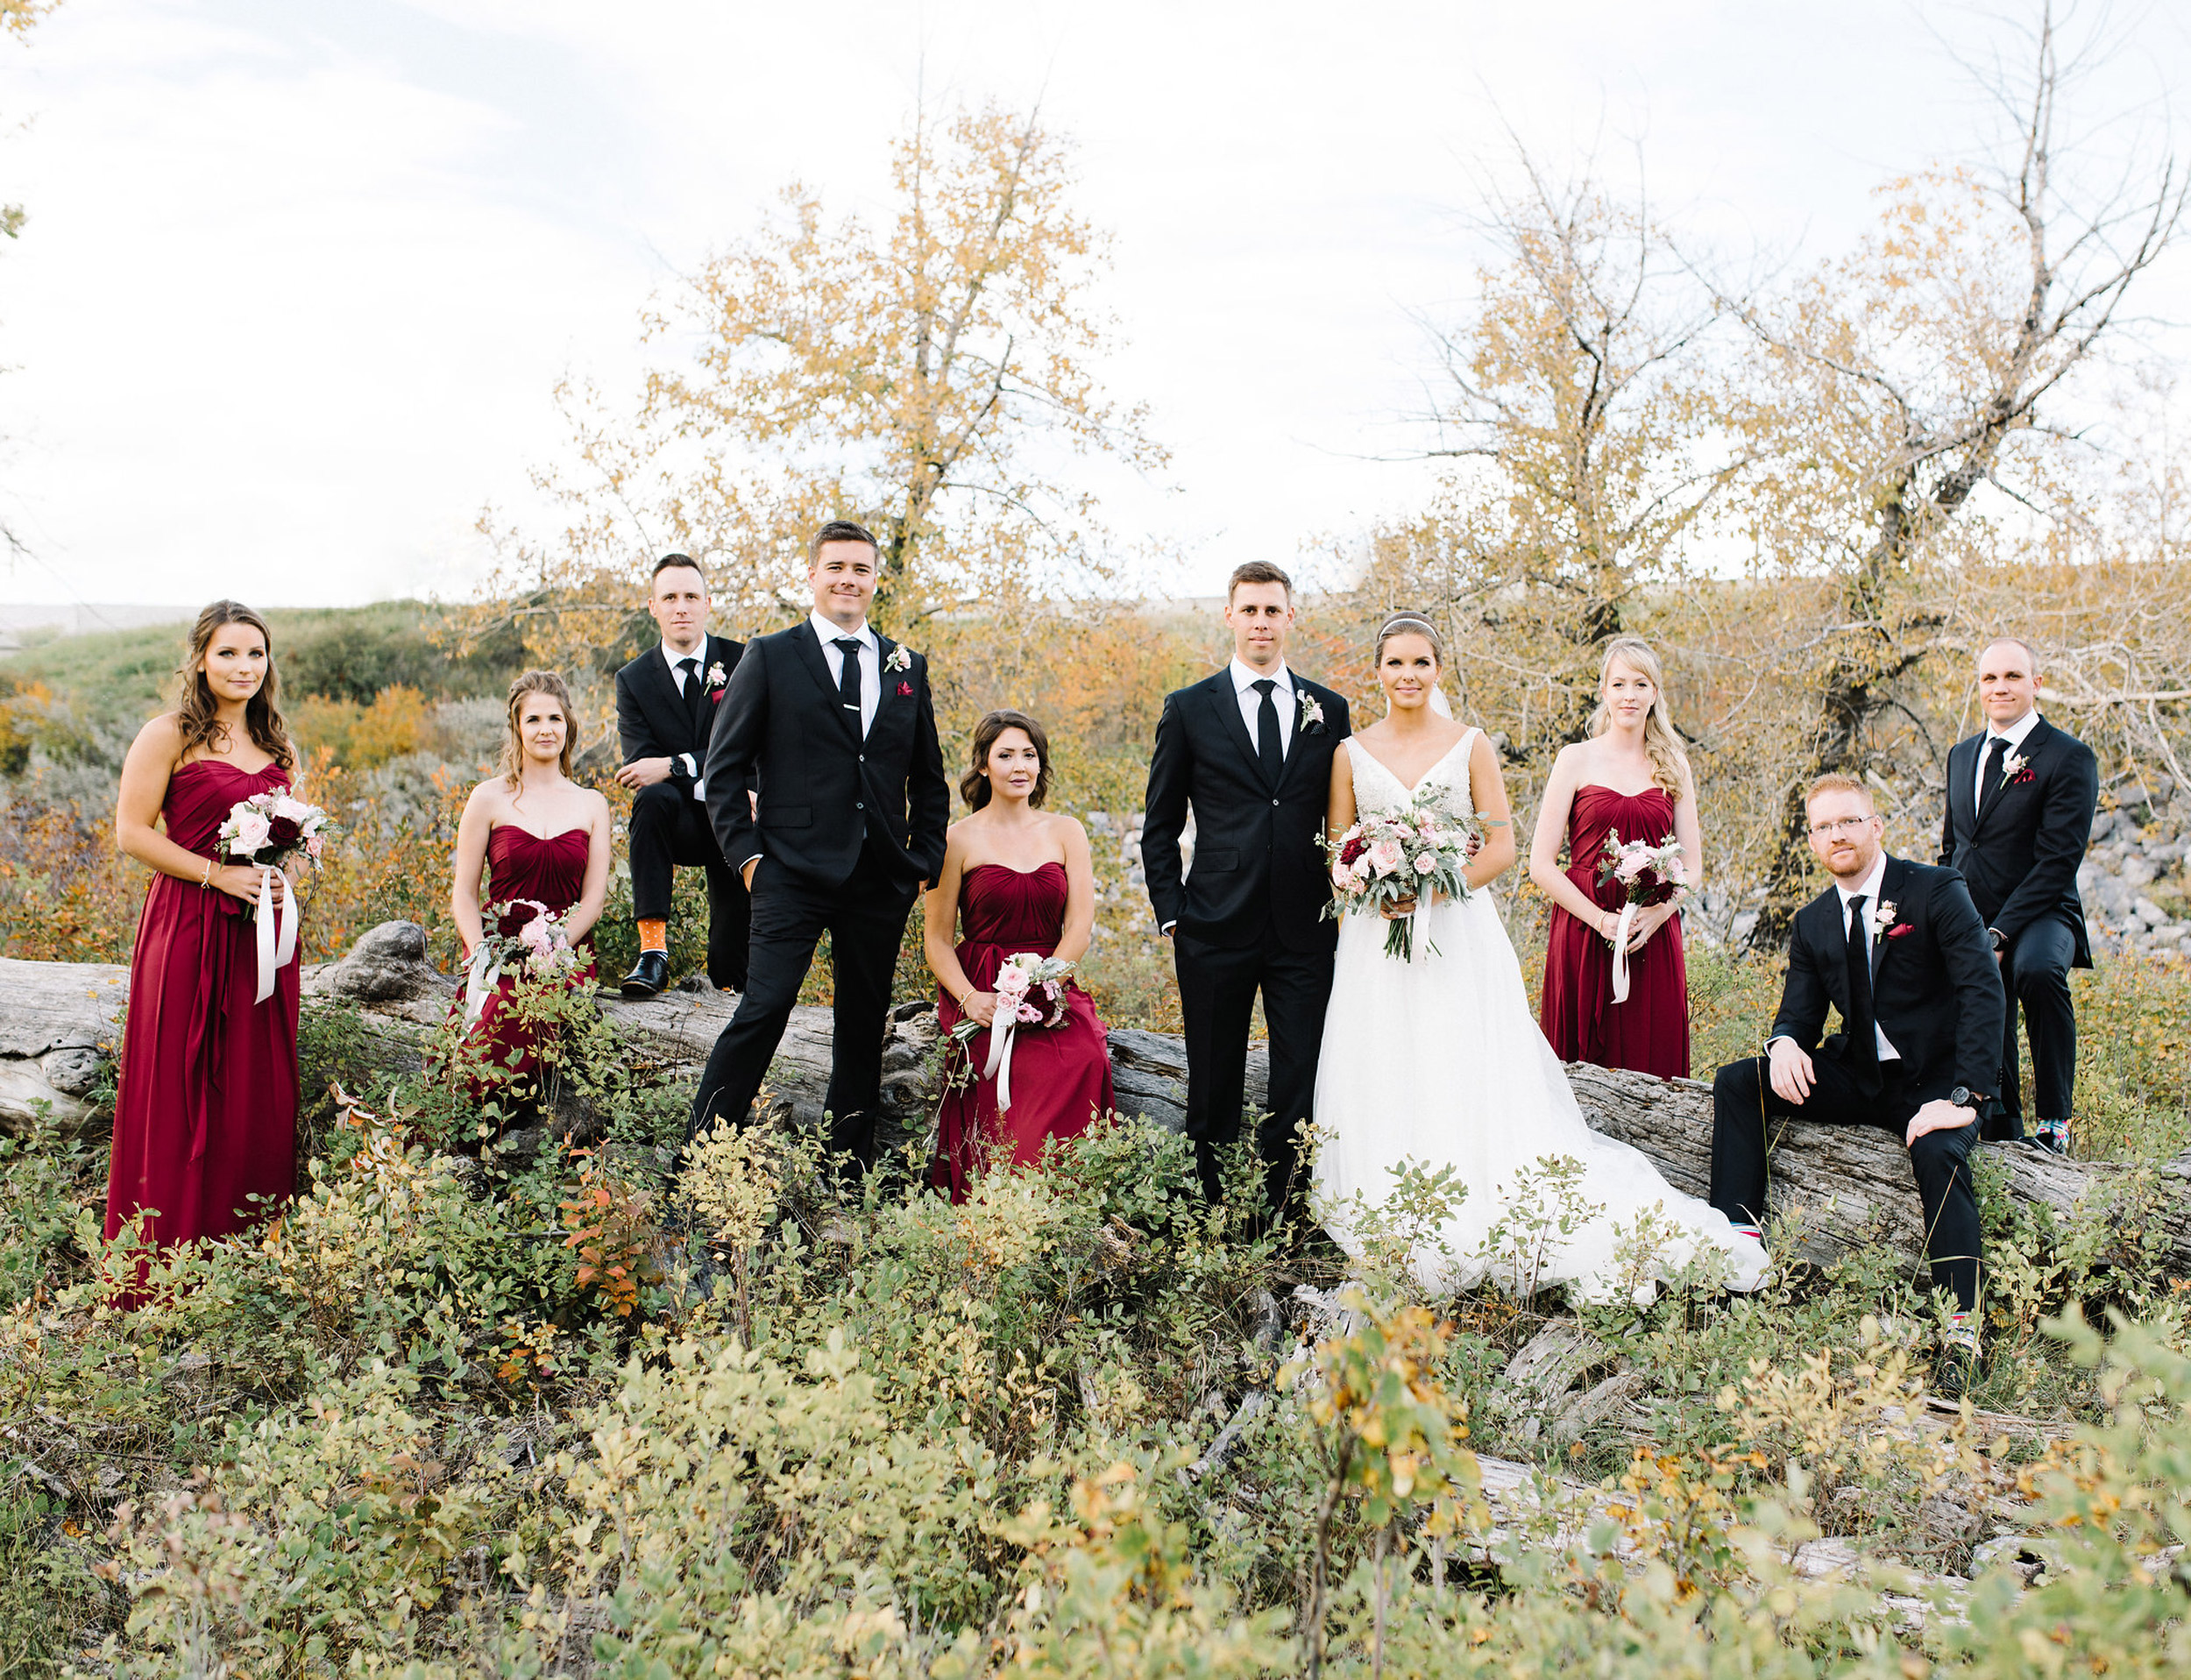 044-calgary_wedding_photographers.jpg